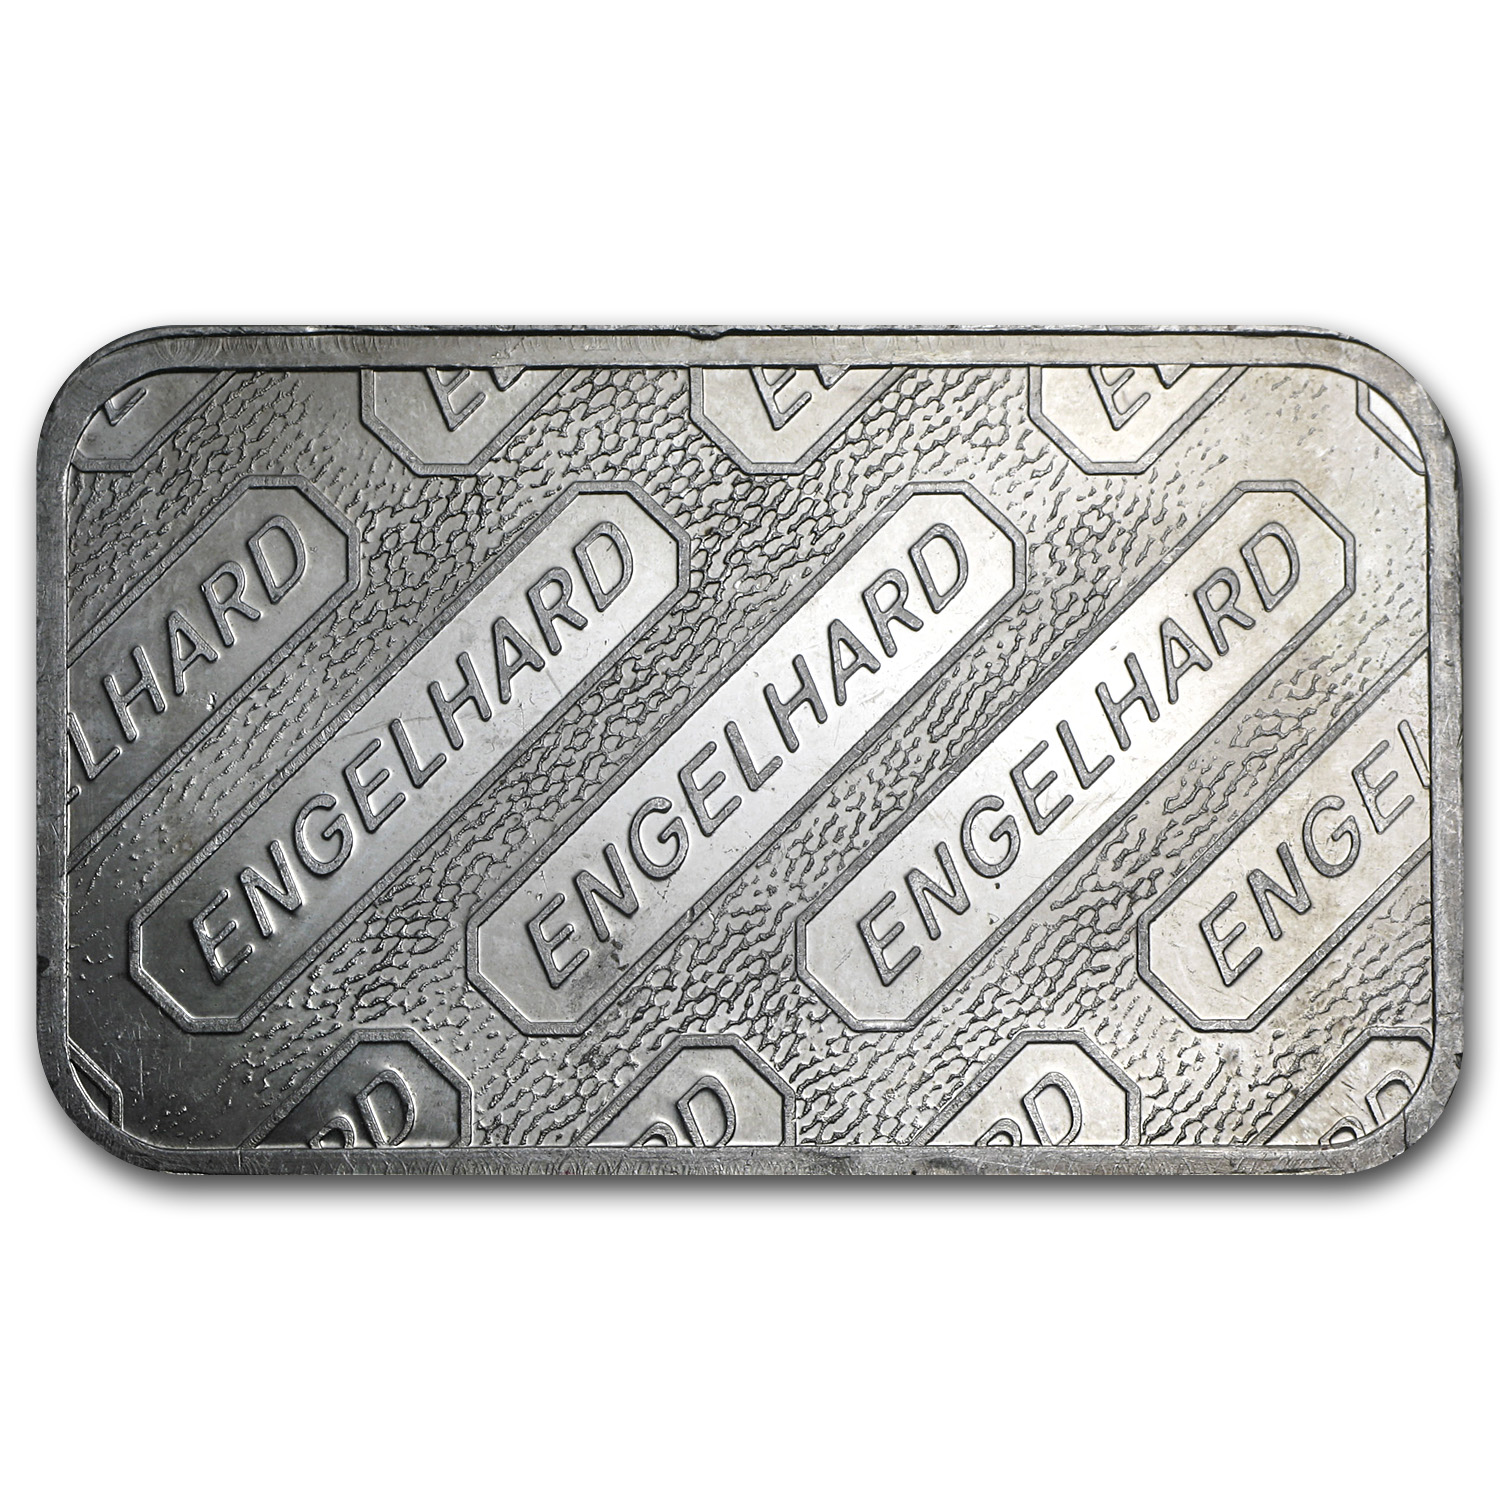 5 oz Silver Bars - Engelhard (Struck/Logo Back)